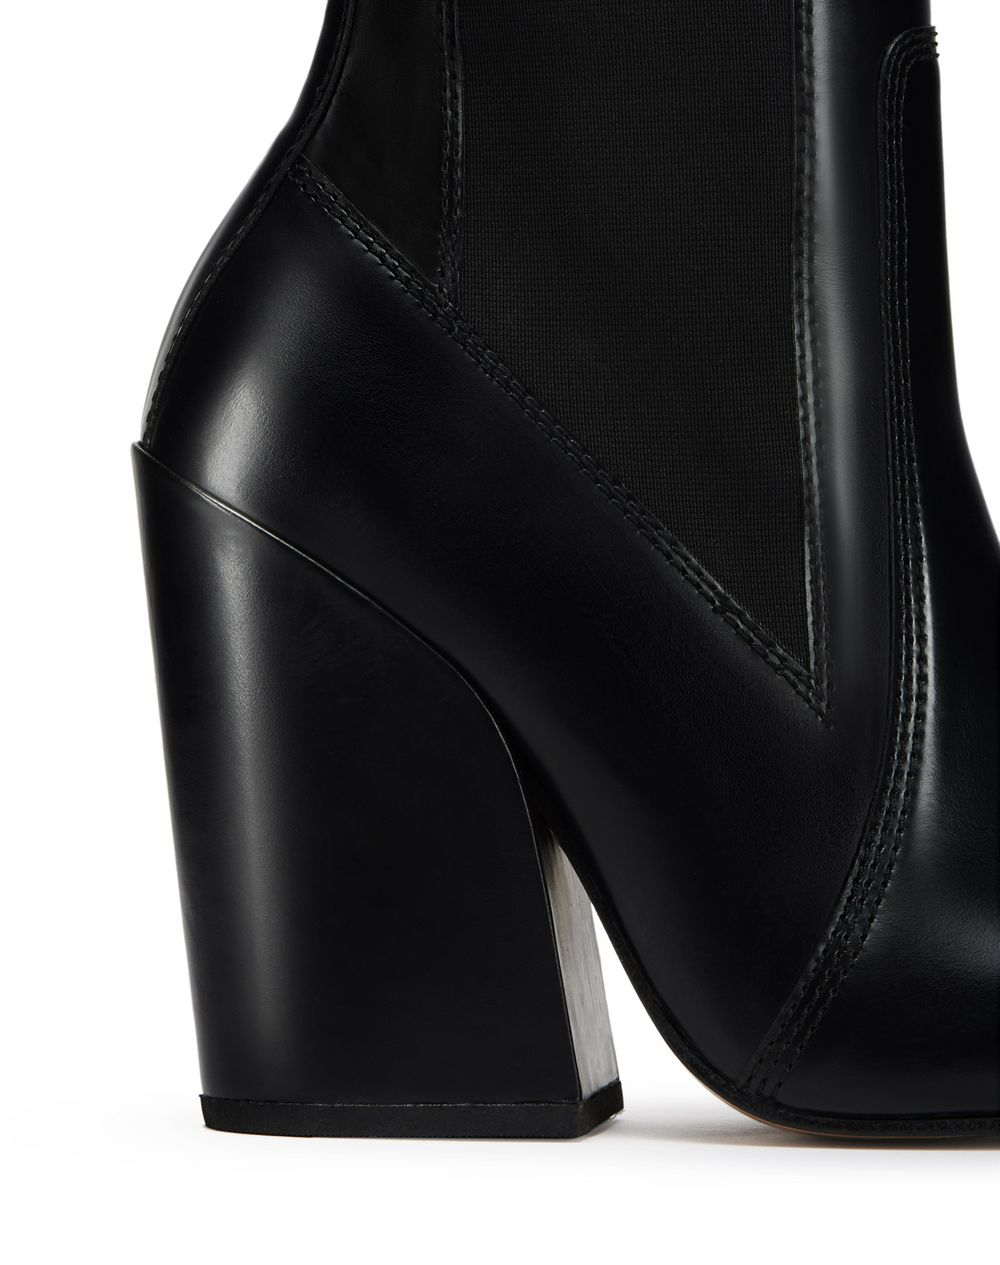 PATTI ANKLE BOOT - Lanvin